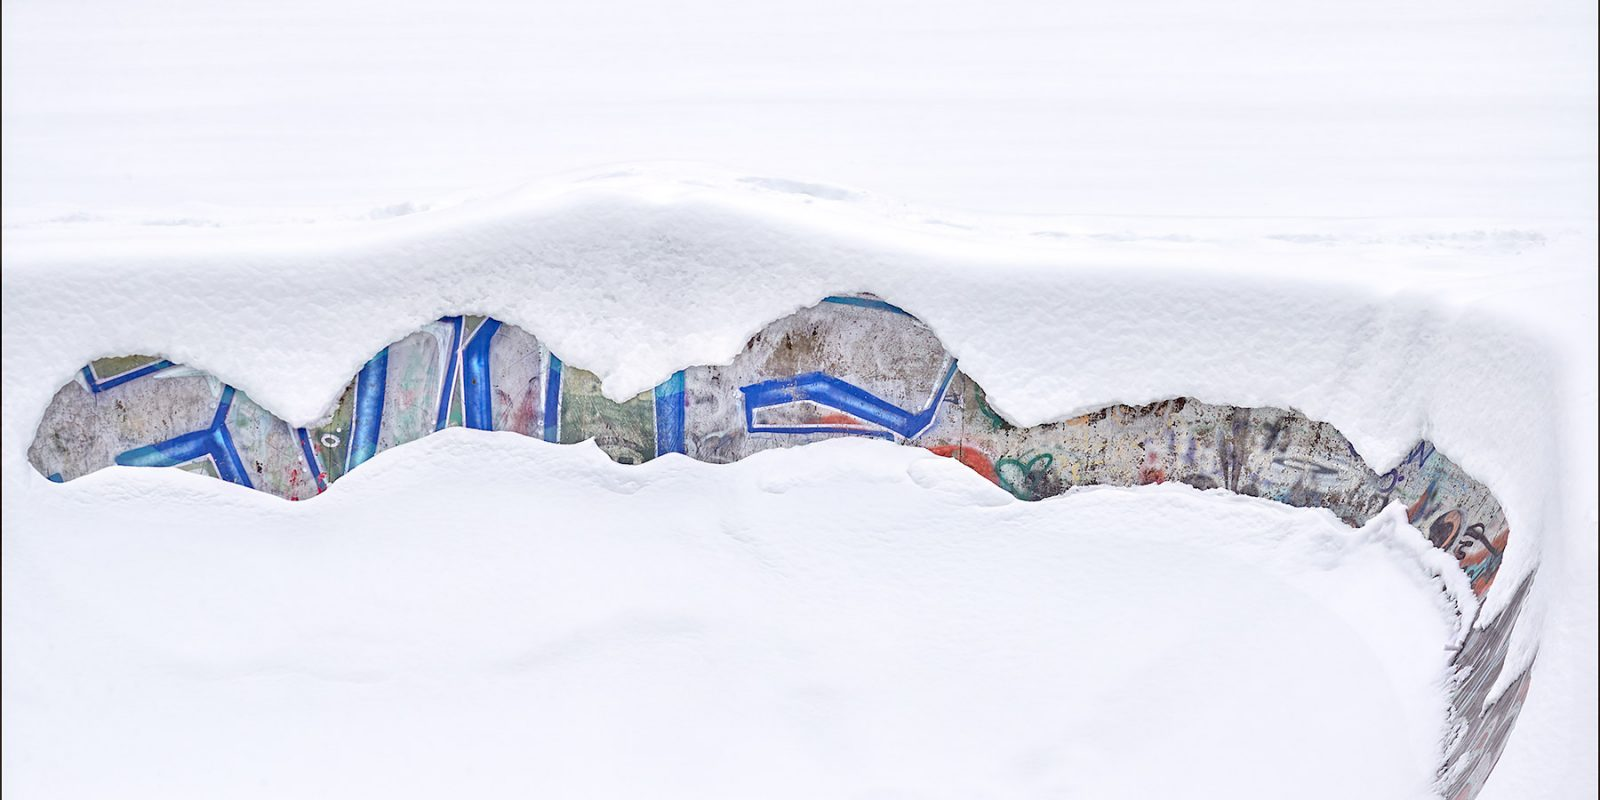 Snow Art on Salt Spring Island